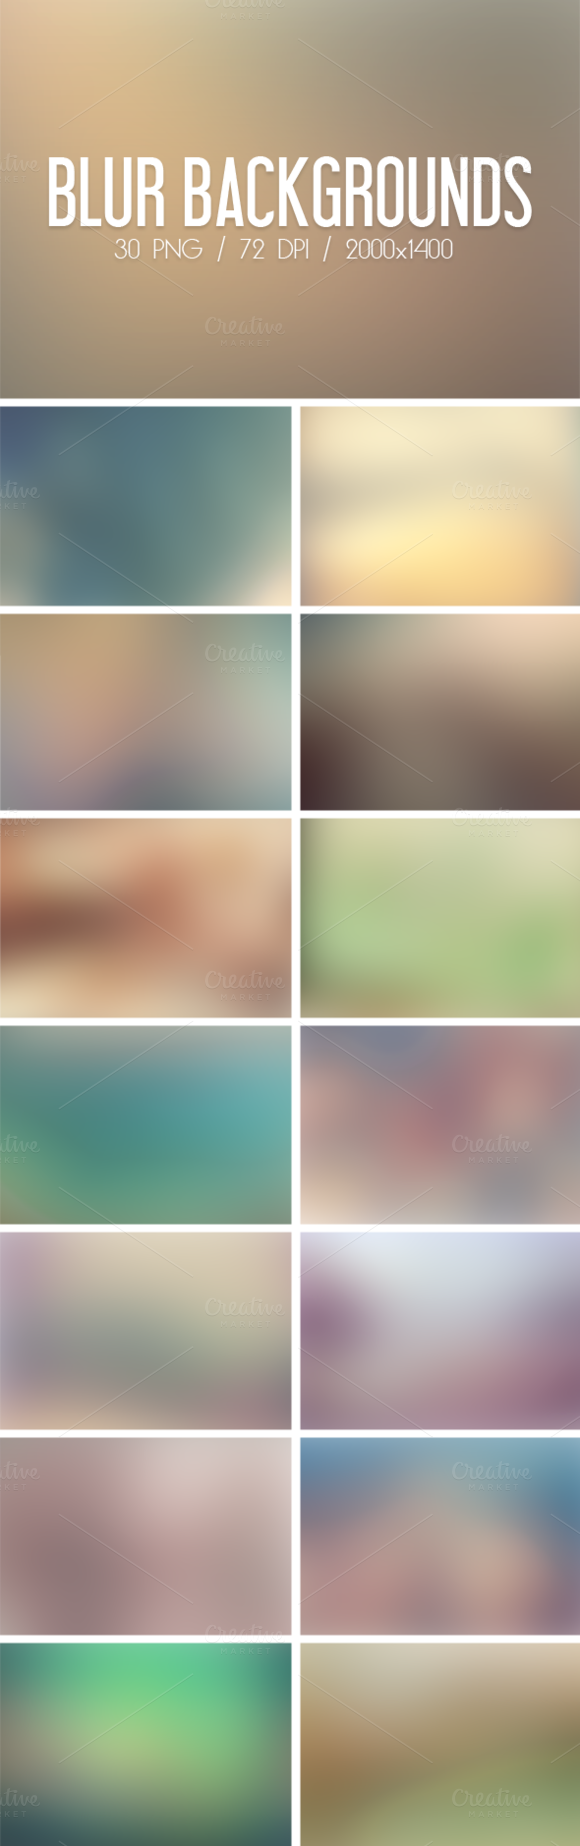 Blur Backgrounds